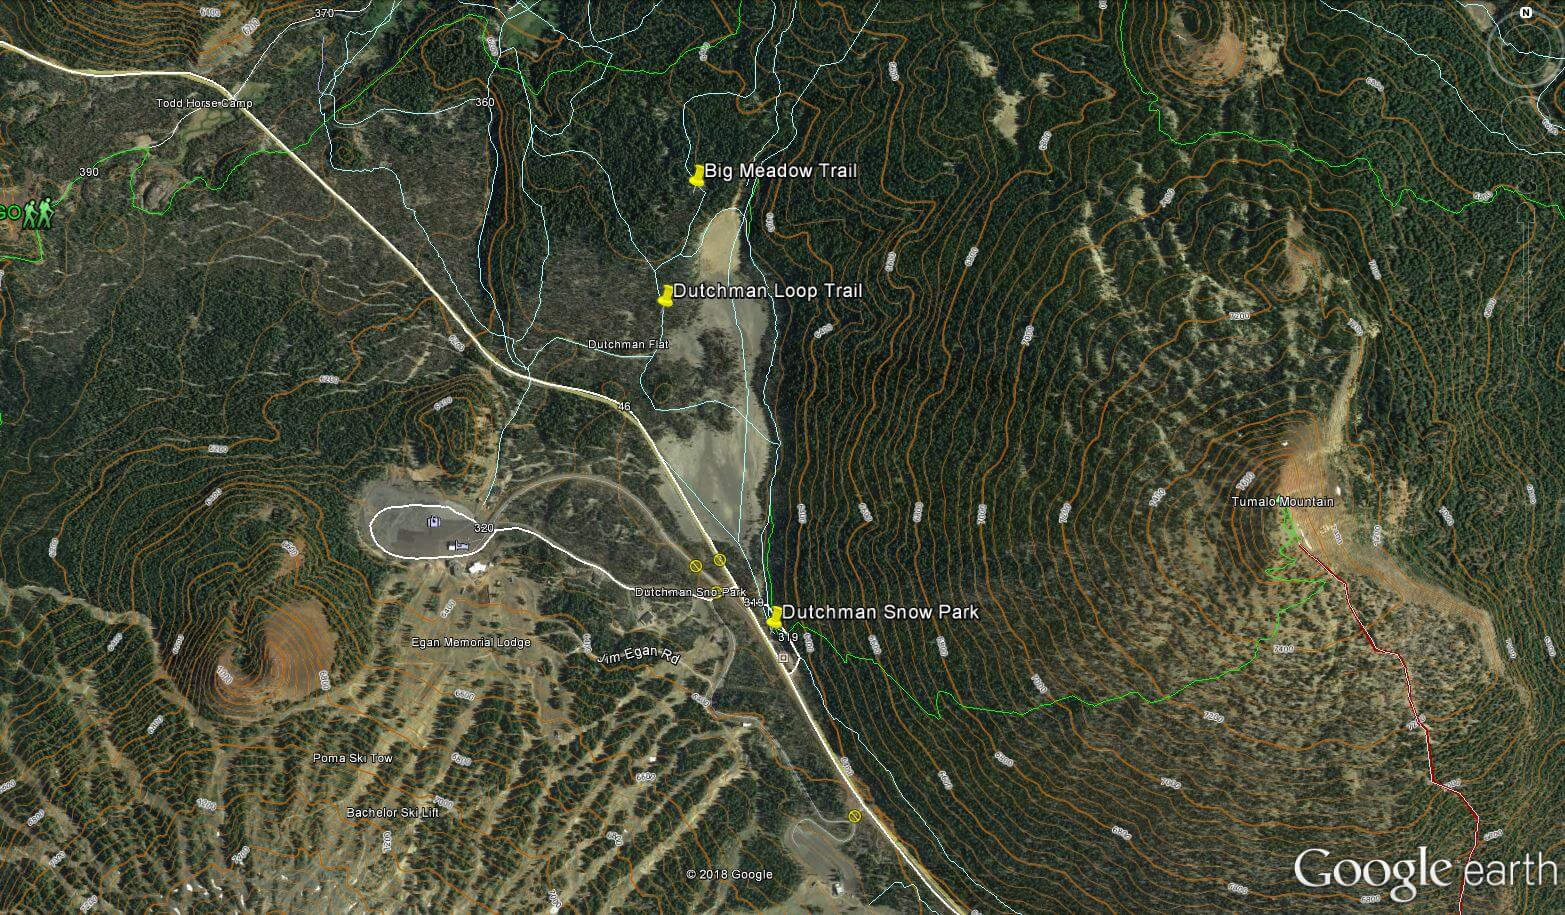 LOST SNOWSHOERS RESCUED AT DUTCHMAN FLAT